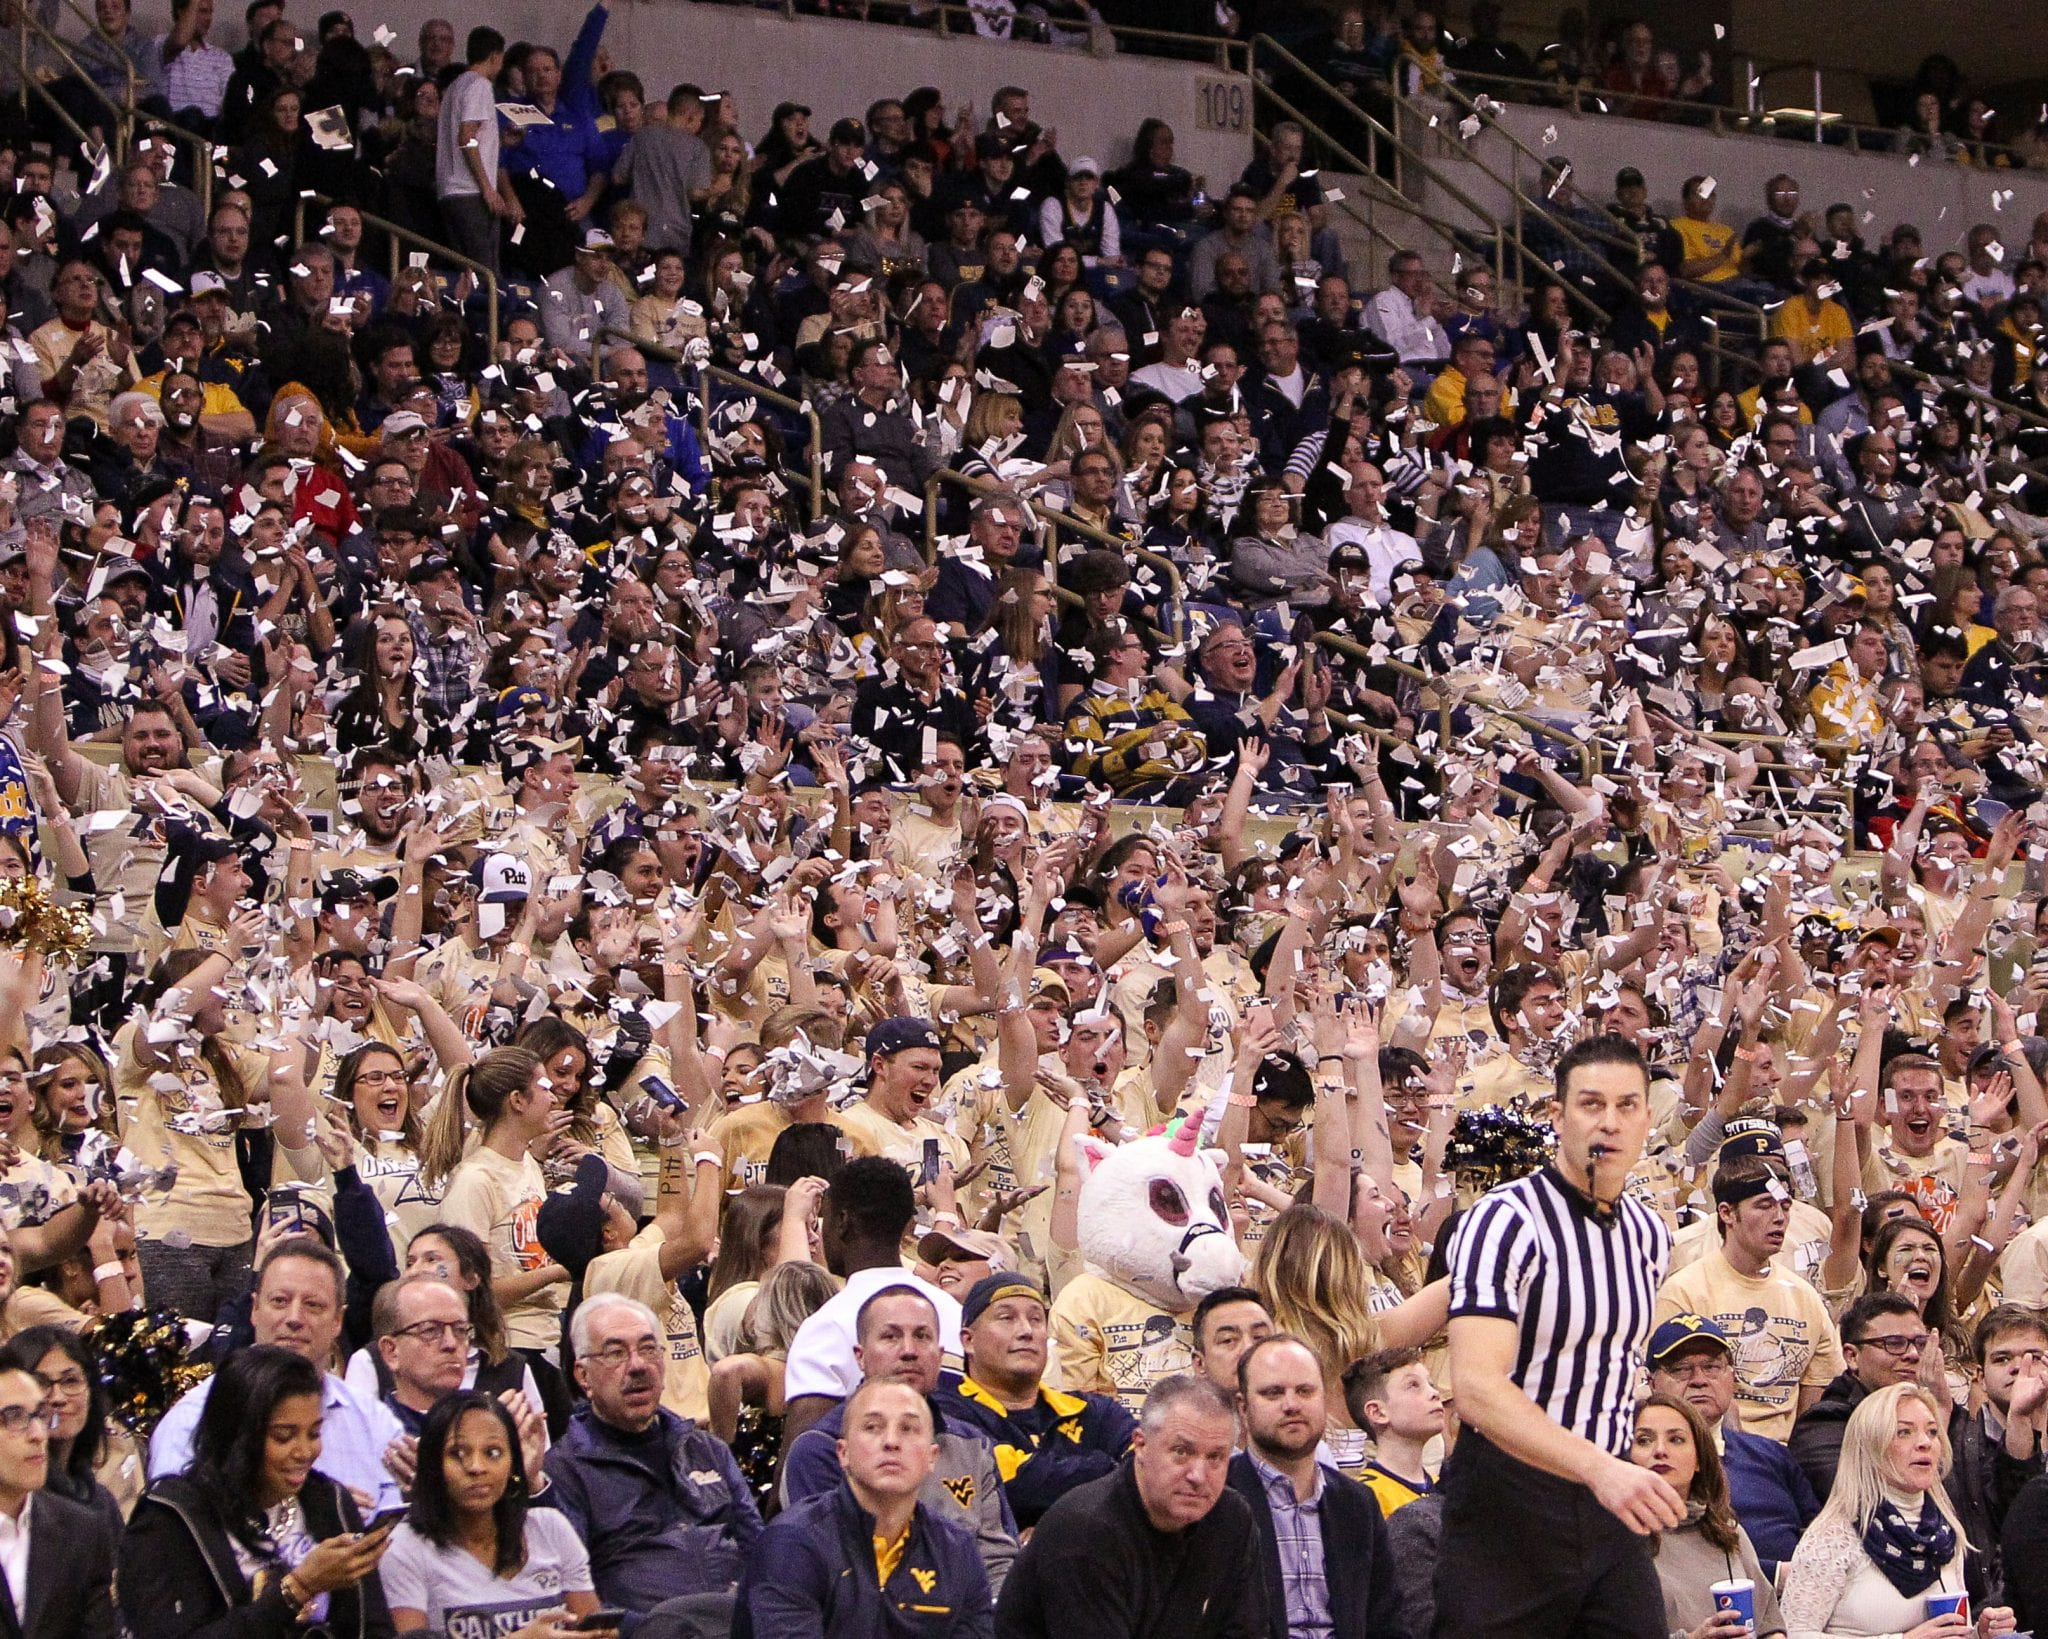 Pitt Student Section celebrates their first basket as the Pitt Panthers take on West Virginia on December 9, 2017 -- DAVID HAGUE